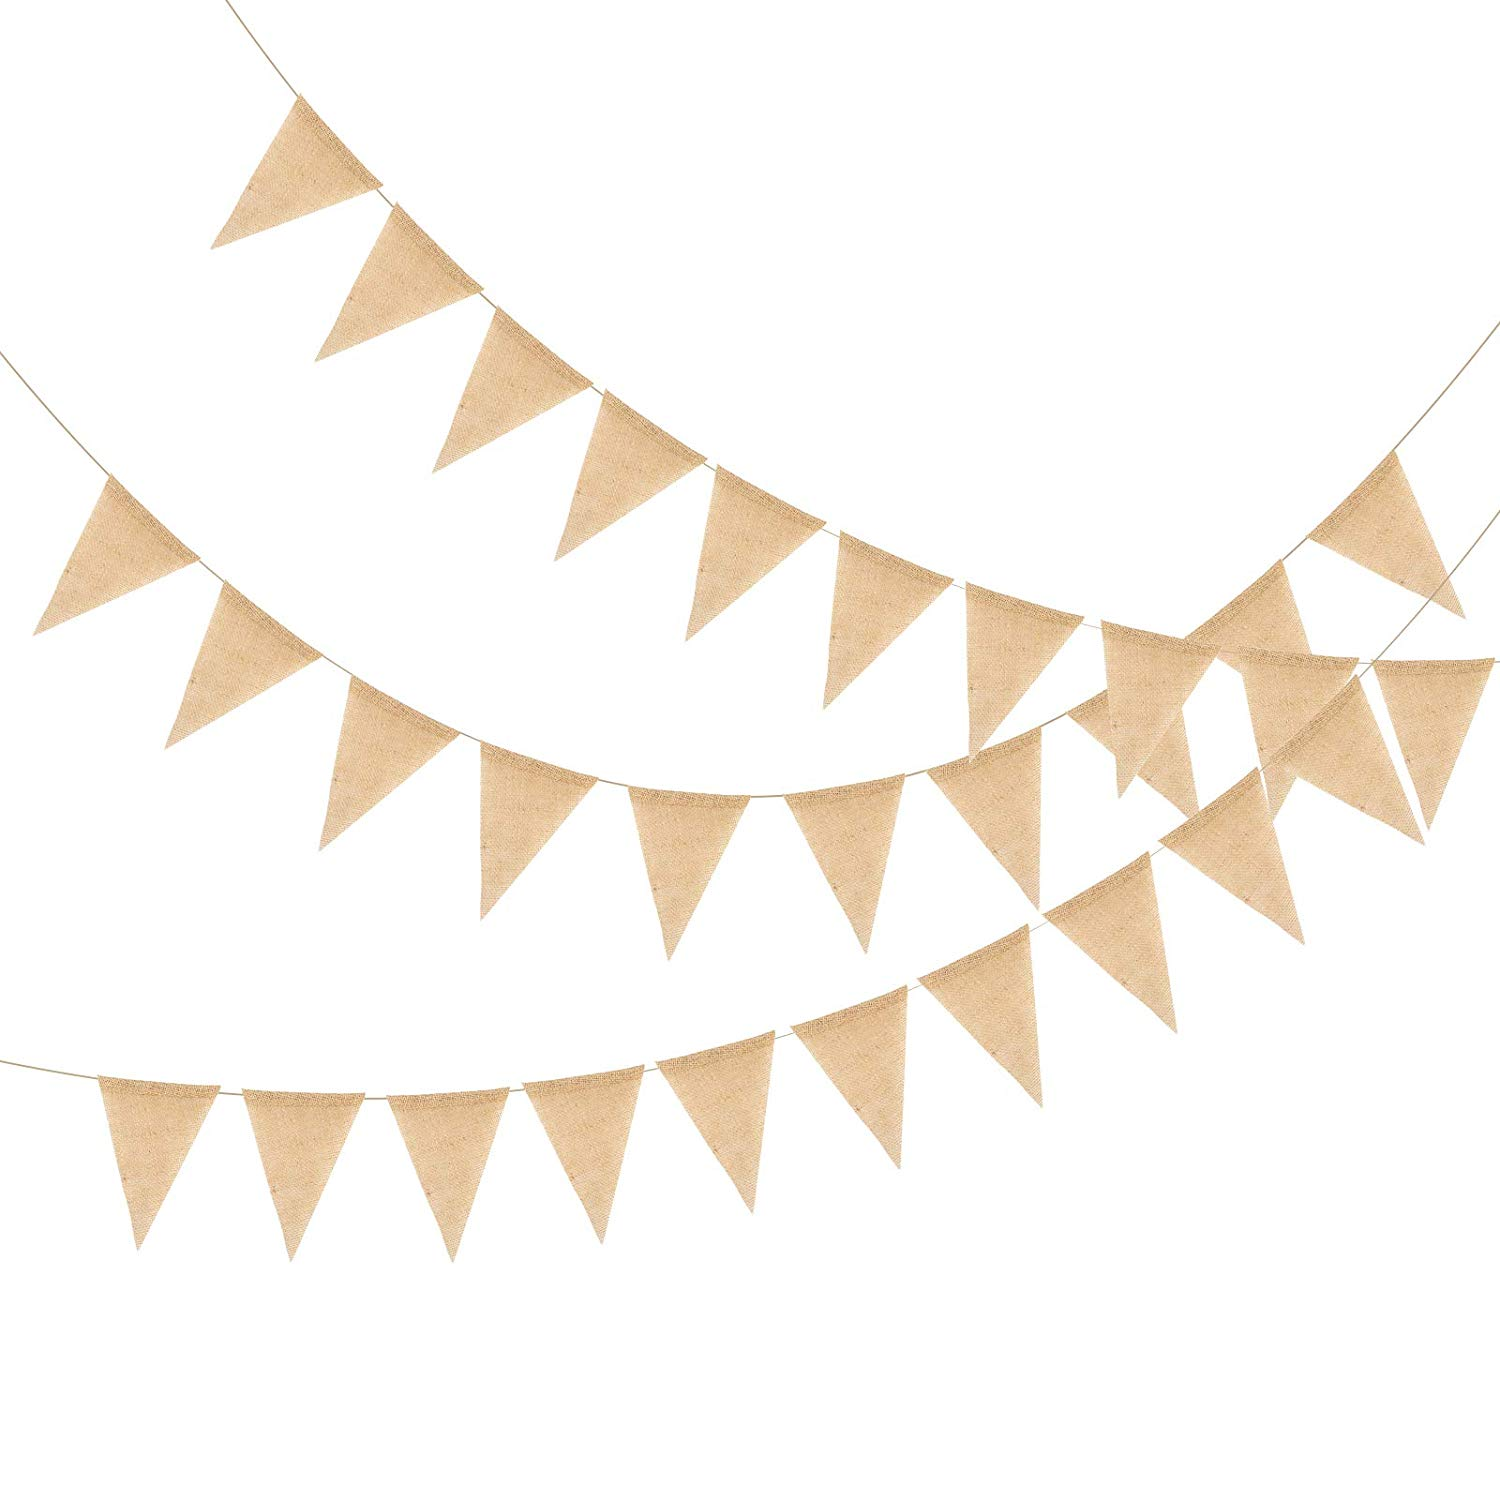 METABLE 50 Pcs Hessian Banner Flag Bunting Garland Hanging Pennant Vintage DIY Party Decor for Birthday,Wedding, bride to be